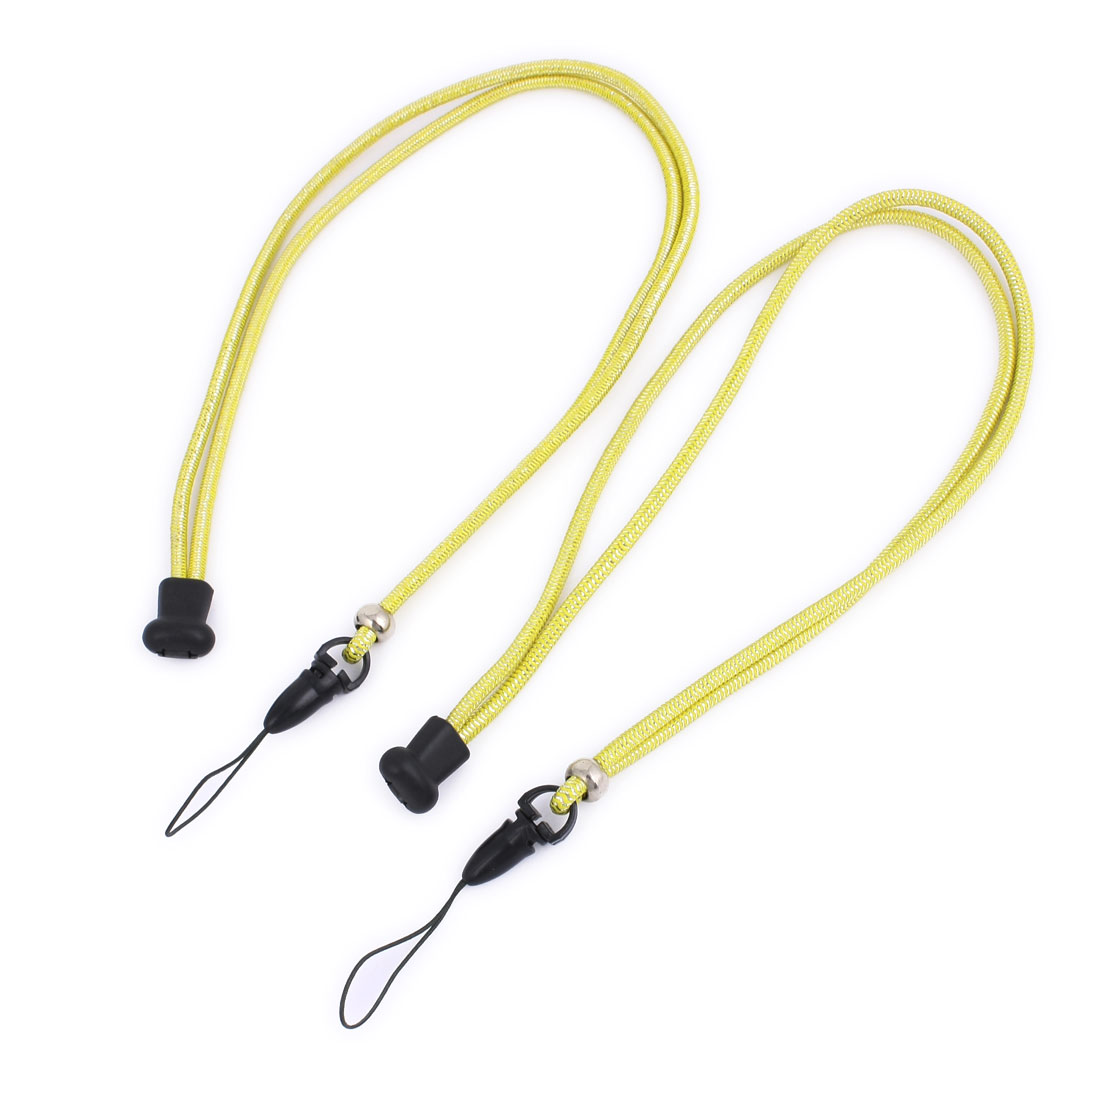 Cell Phone Camera Stretchy Rubber Band Neck Strap String Yellow 2 Pcs